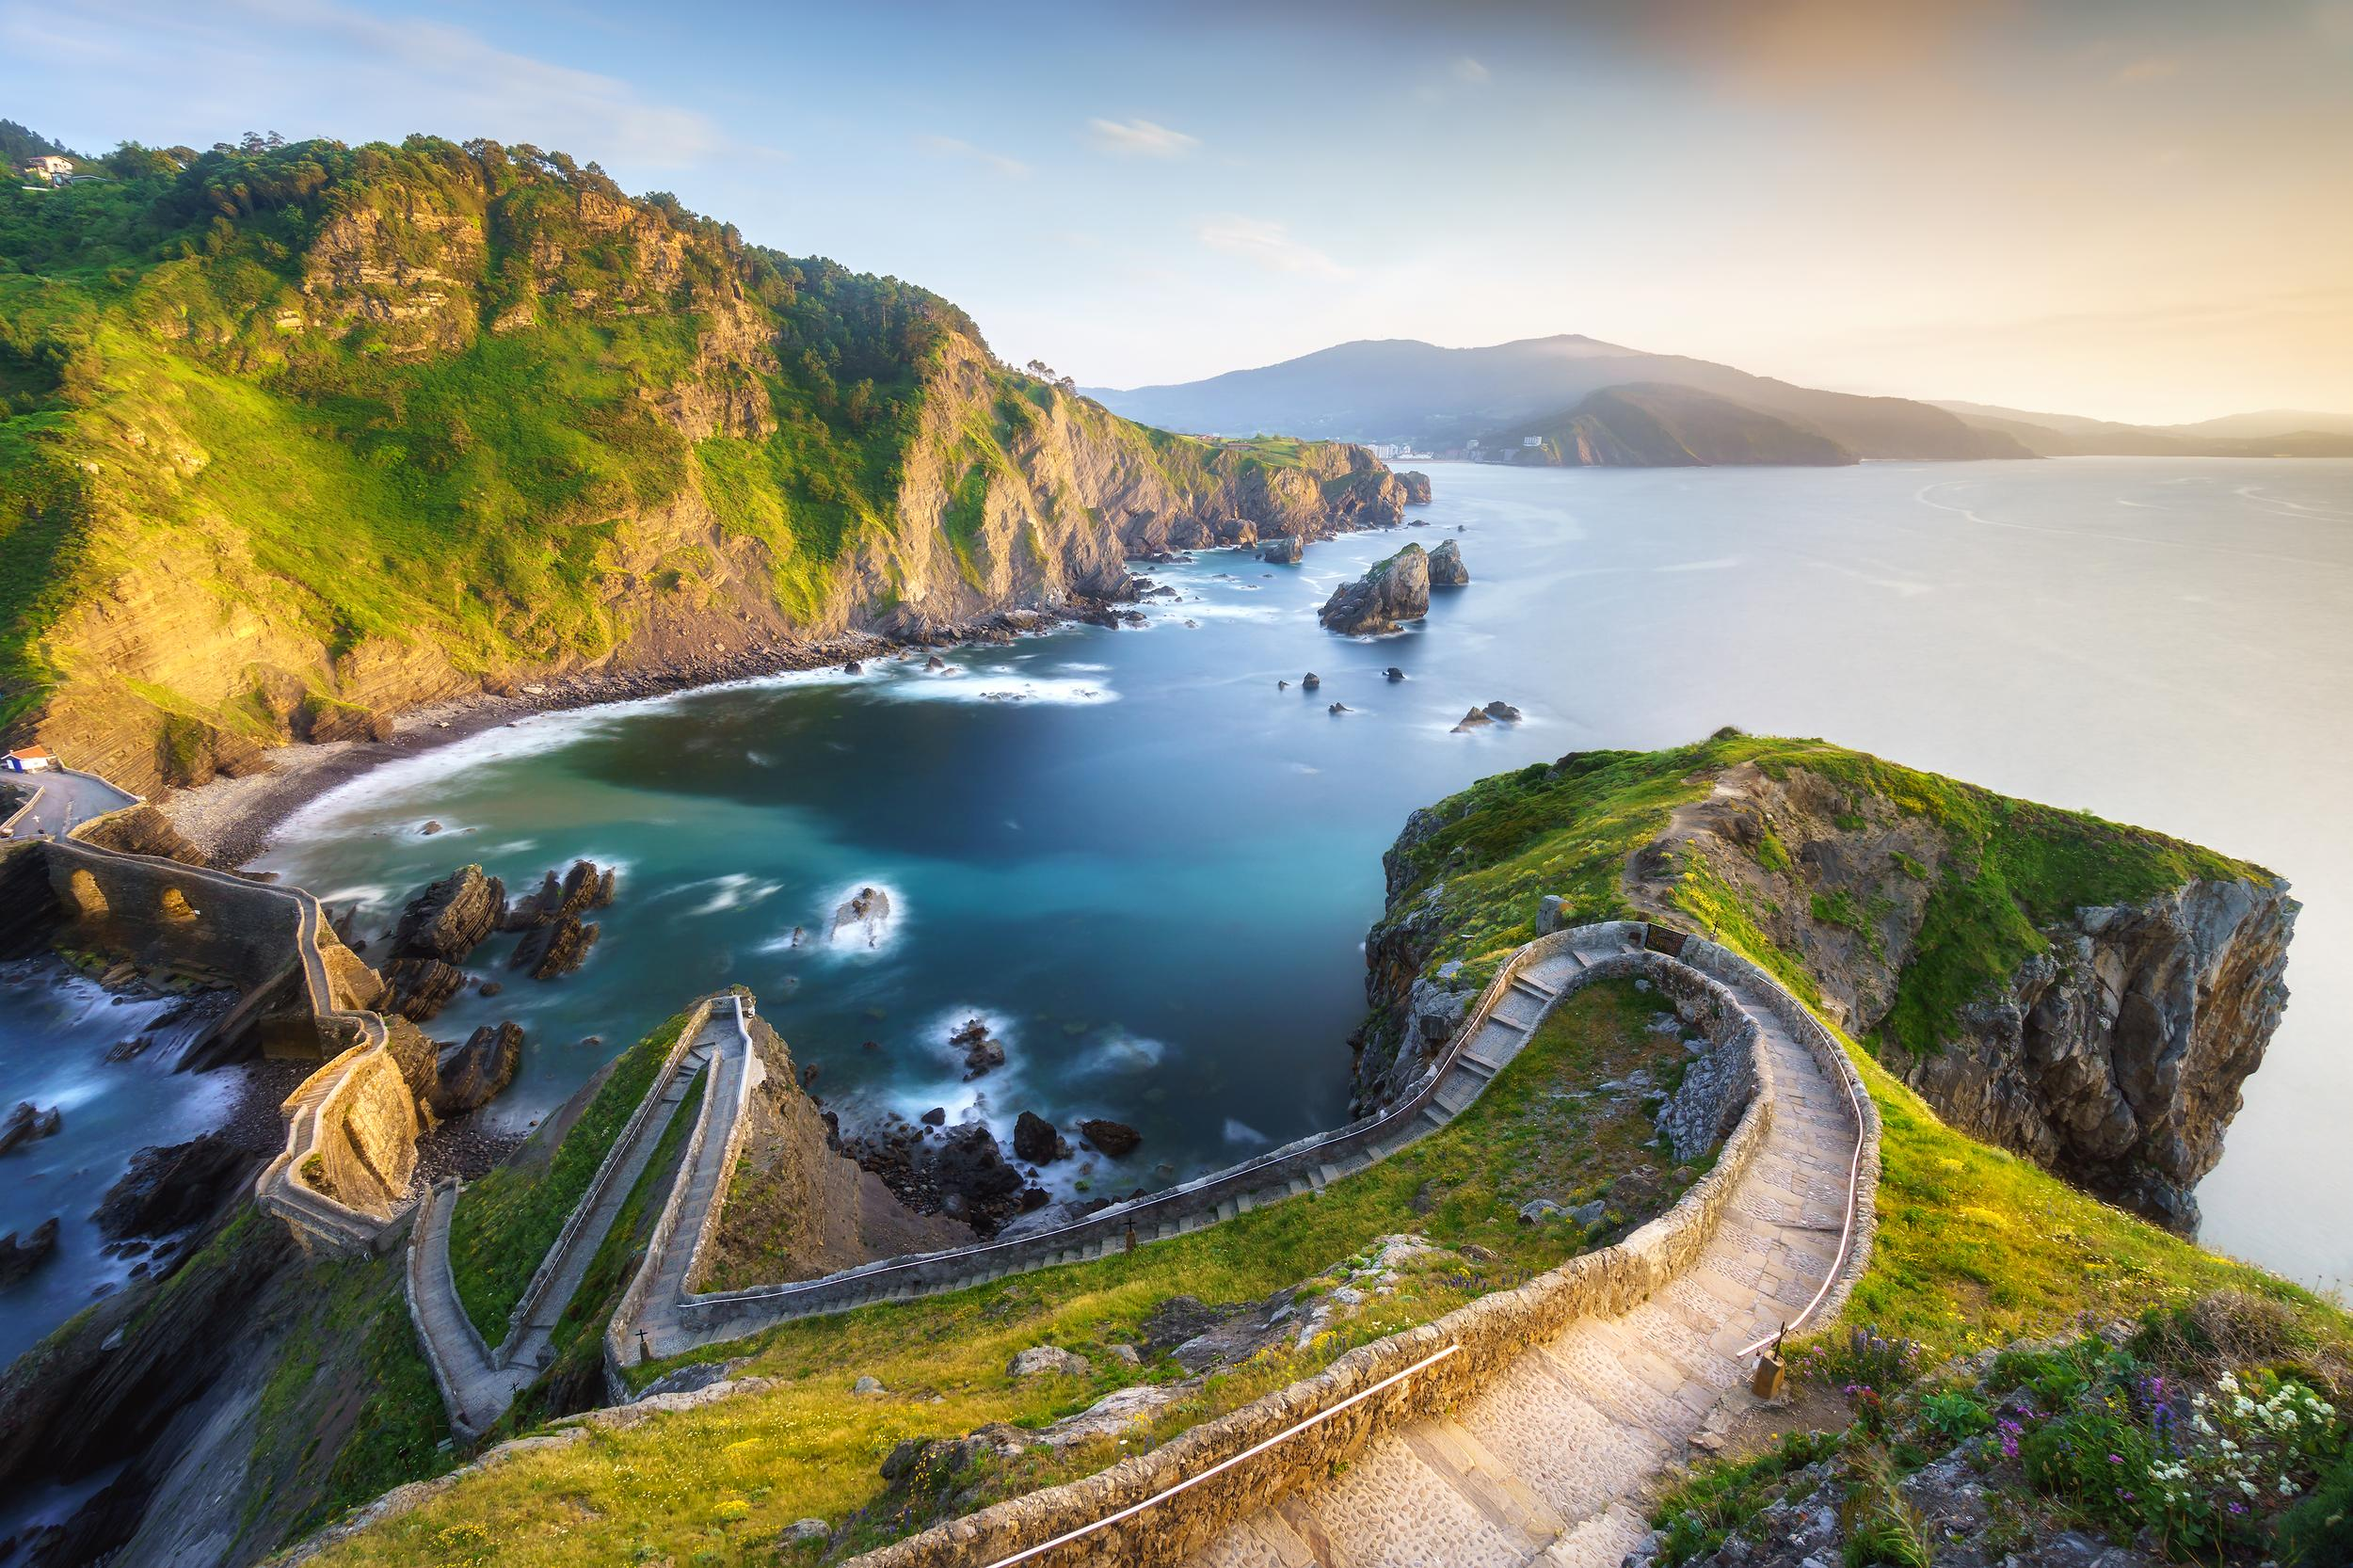 """<p><strong>GOT location</strong>: Dragonstone</p>  <p><strong>Real life location</strong>: San Juan de Gaztelugatxe, Spain</p>  <p>Get on a boat and channel your innerDaenerys Targaryen by visiting the stairs ofSan Juan de Gaztelugatx -- otherwise known as Dragonstone.</p>  <p><a href=""""https://fave.co/2GqmPJE""""><strong>Book your trip.</strong></a></p>"""